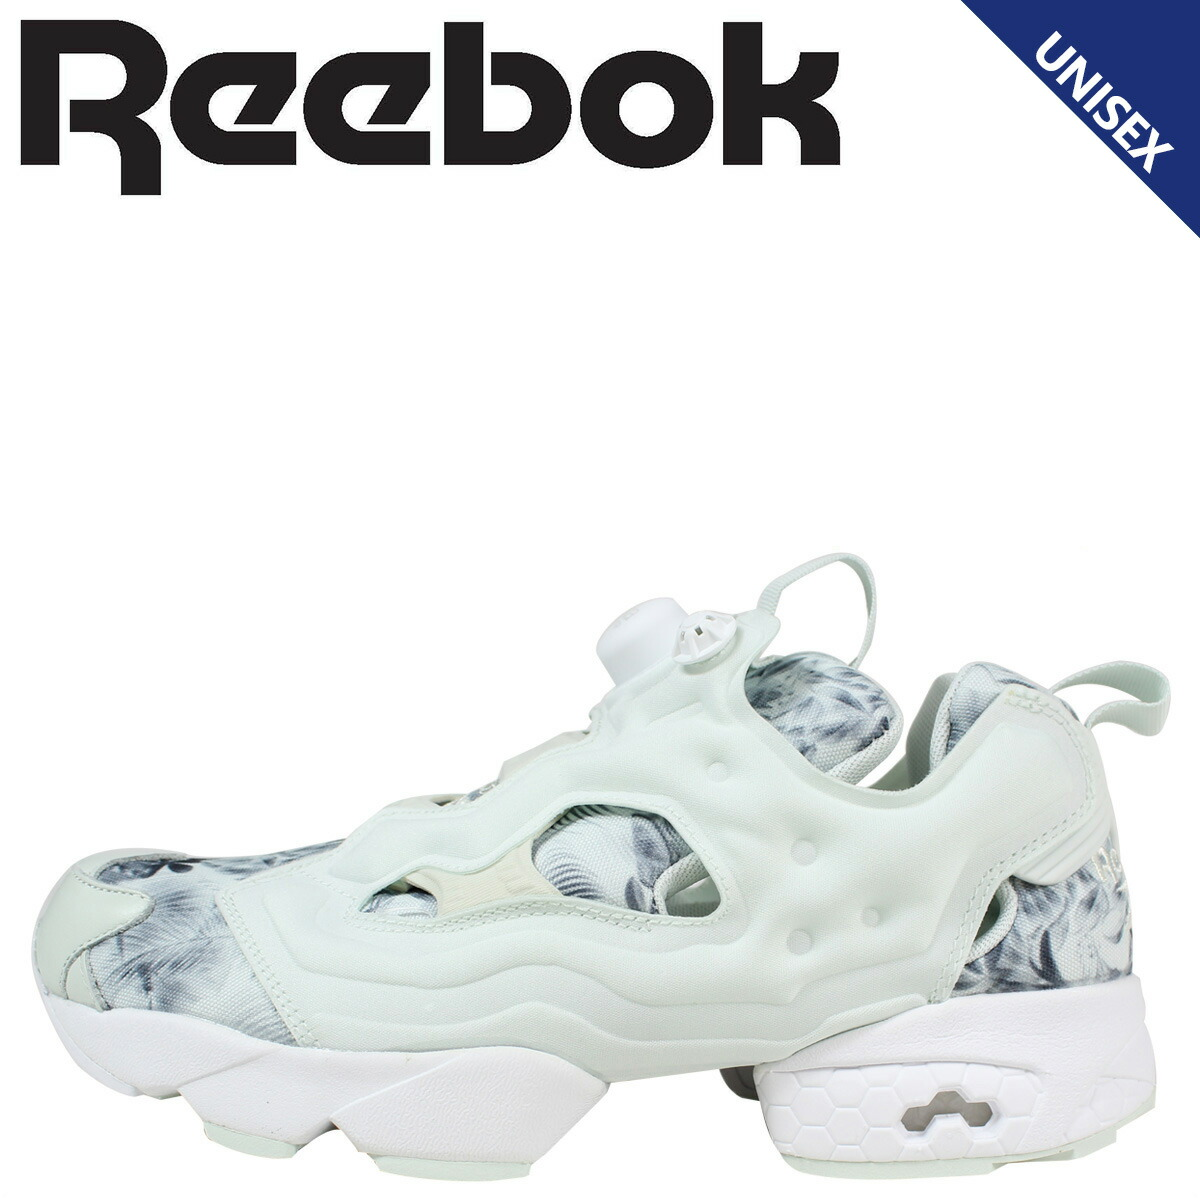 Reebok New Shoes Launched